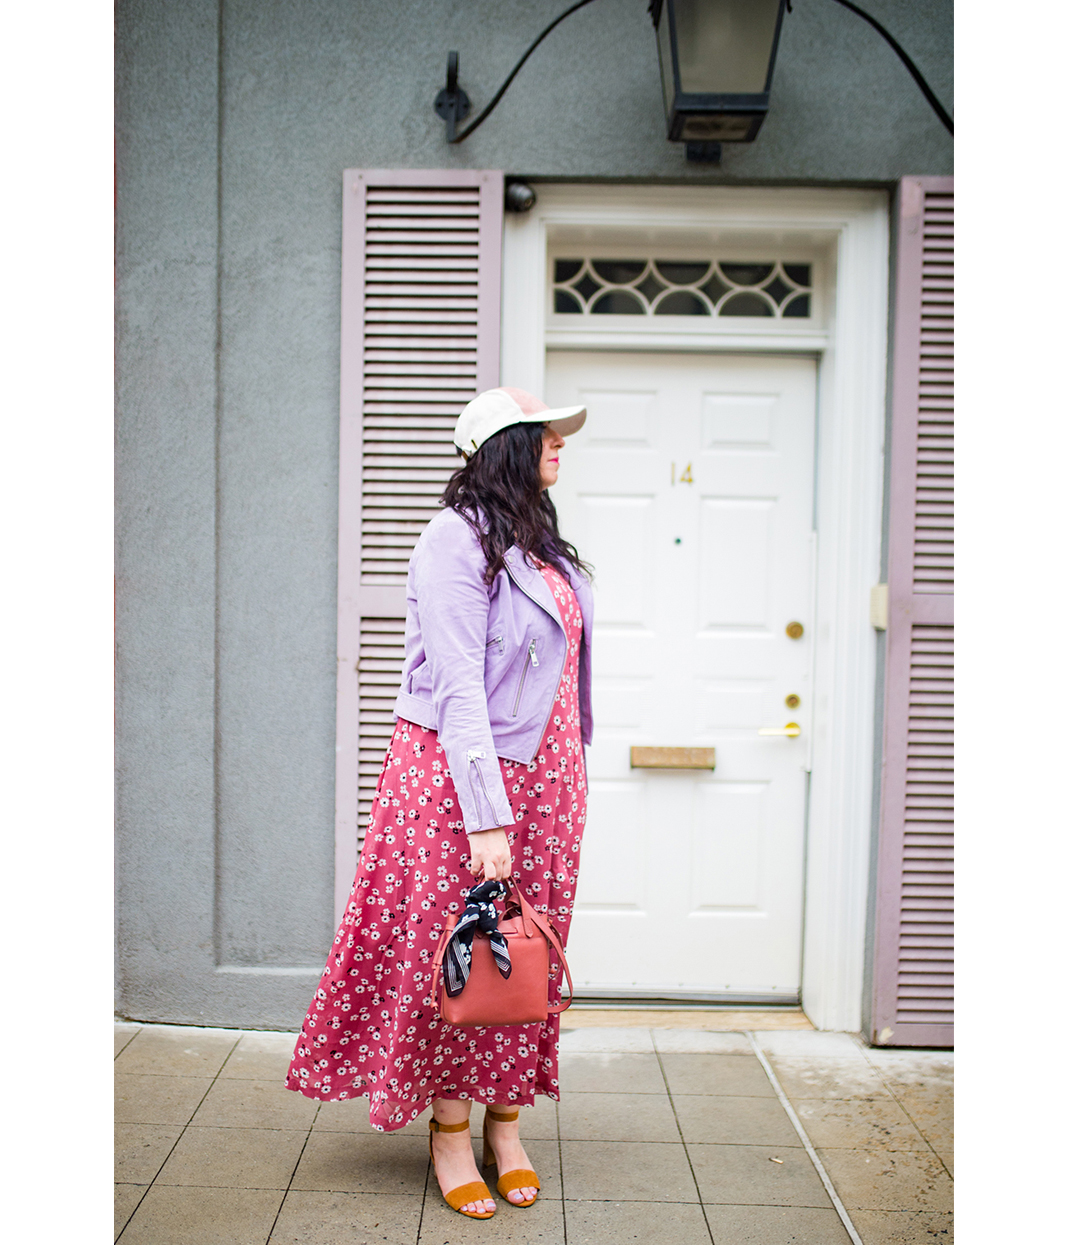 OOTD: Making my way with Madewell featuring Madewell's Tie-Waist Maxi Dress in Vintage Daisies, The Small Drawstring Transport Crossbody, Bandana, Bead Mix Bracelet, Tassel Statement Earrings, Claudia Sandal in Suede, and Bagatelle NYC's Suede Moto Jacket :: Effortlessly with Roxy